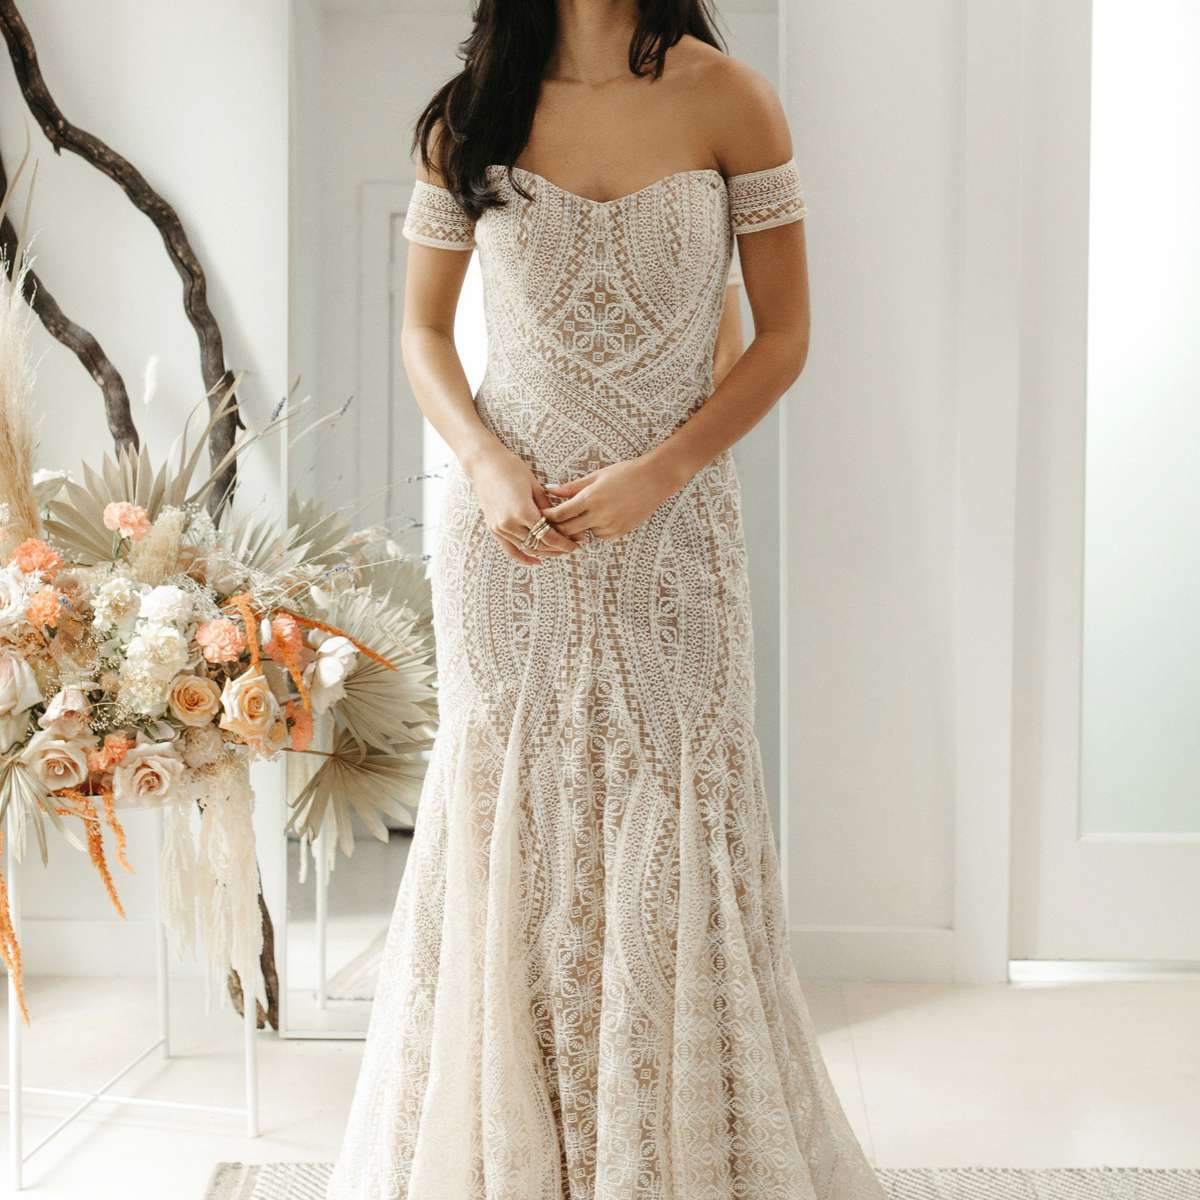 Model in strapless fit-and-flare embroidered gown with matching armbands